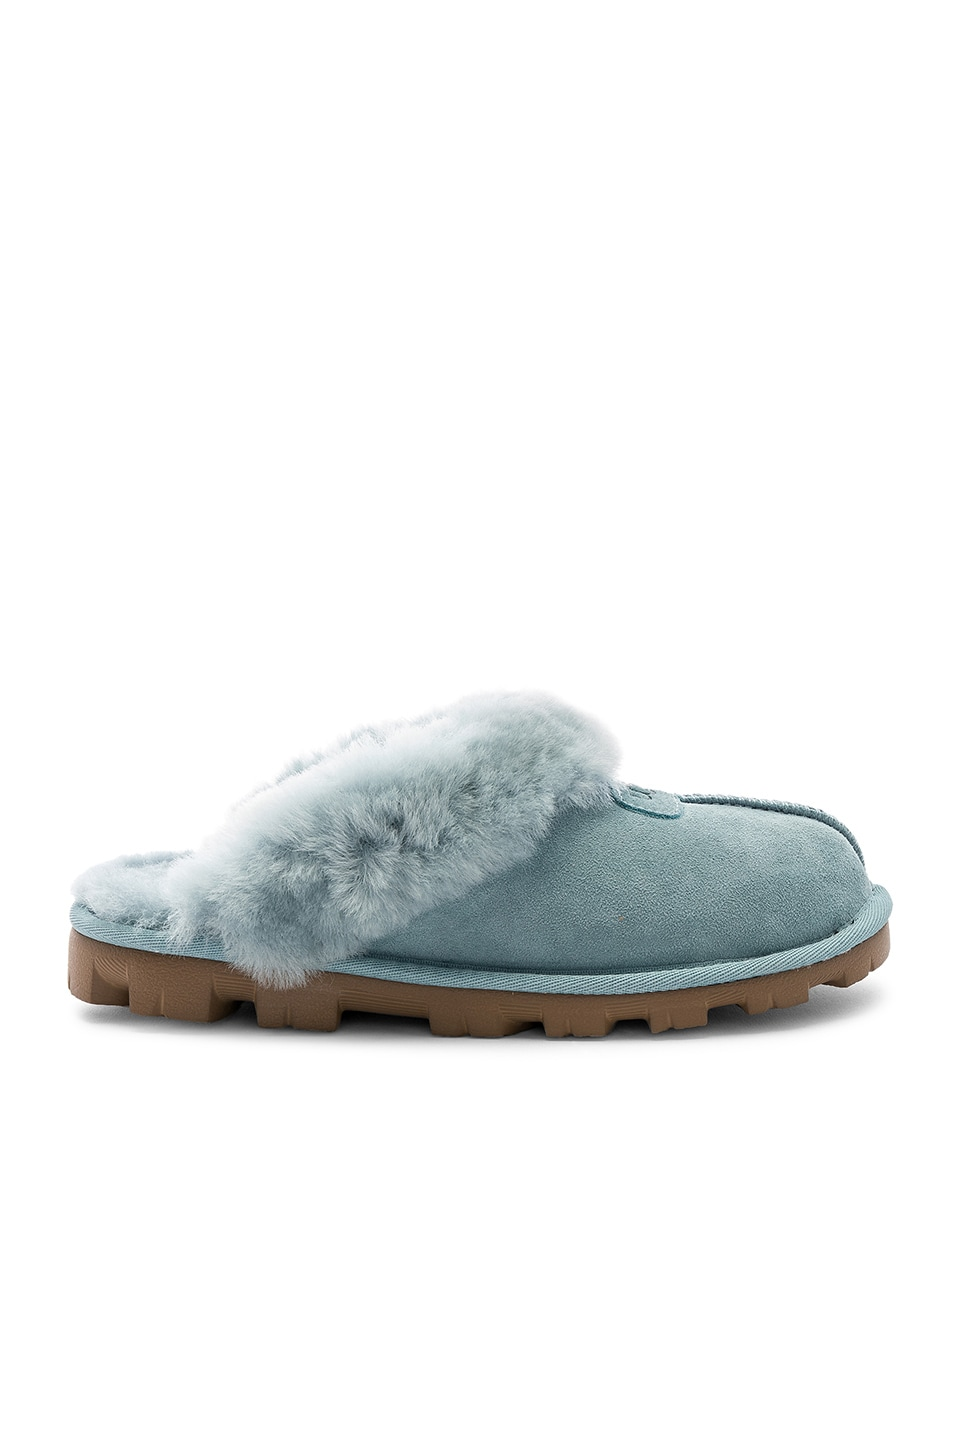 a2554feb7ee UGG Coquette Slipper in Succulent | REVOLVE